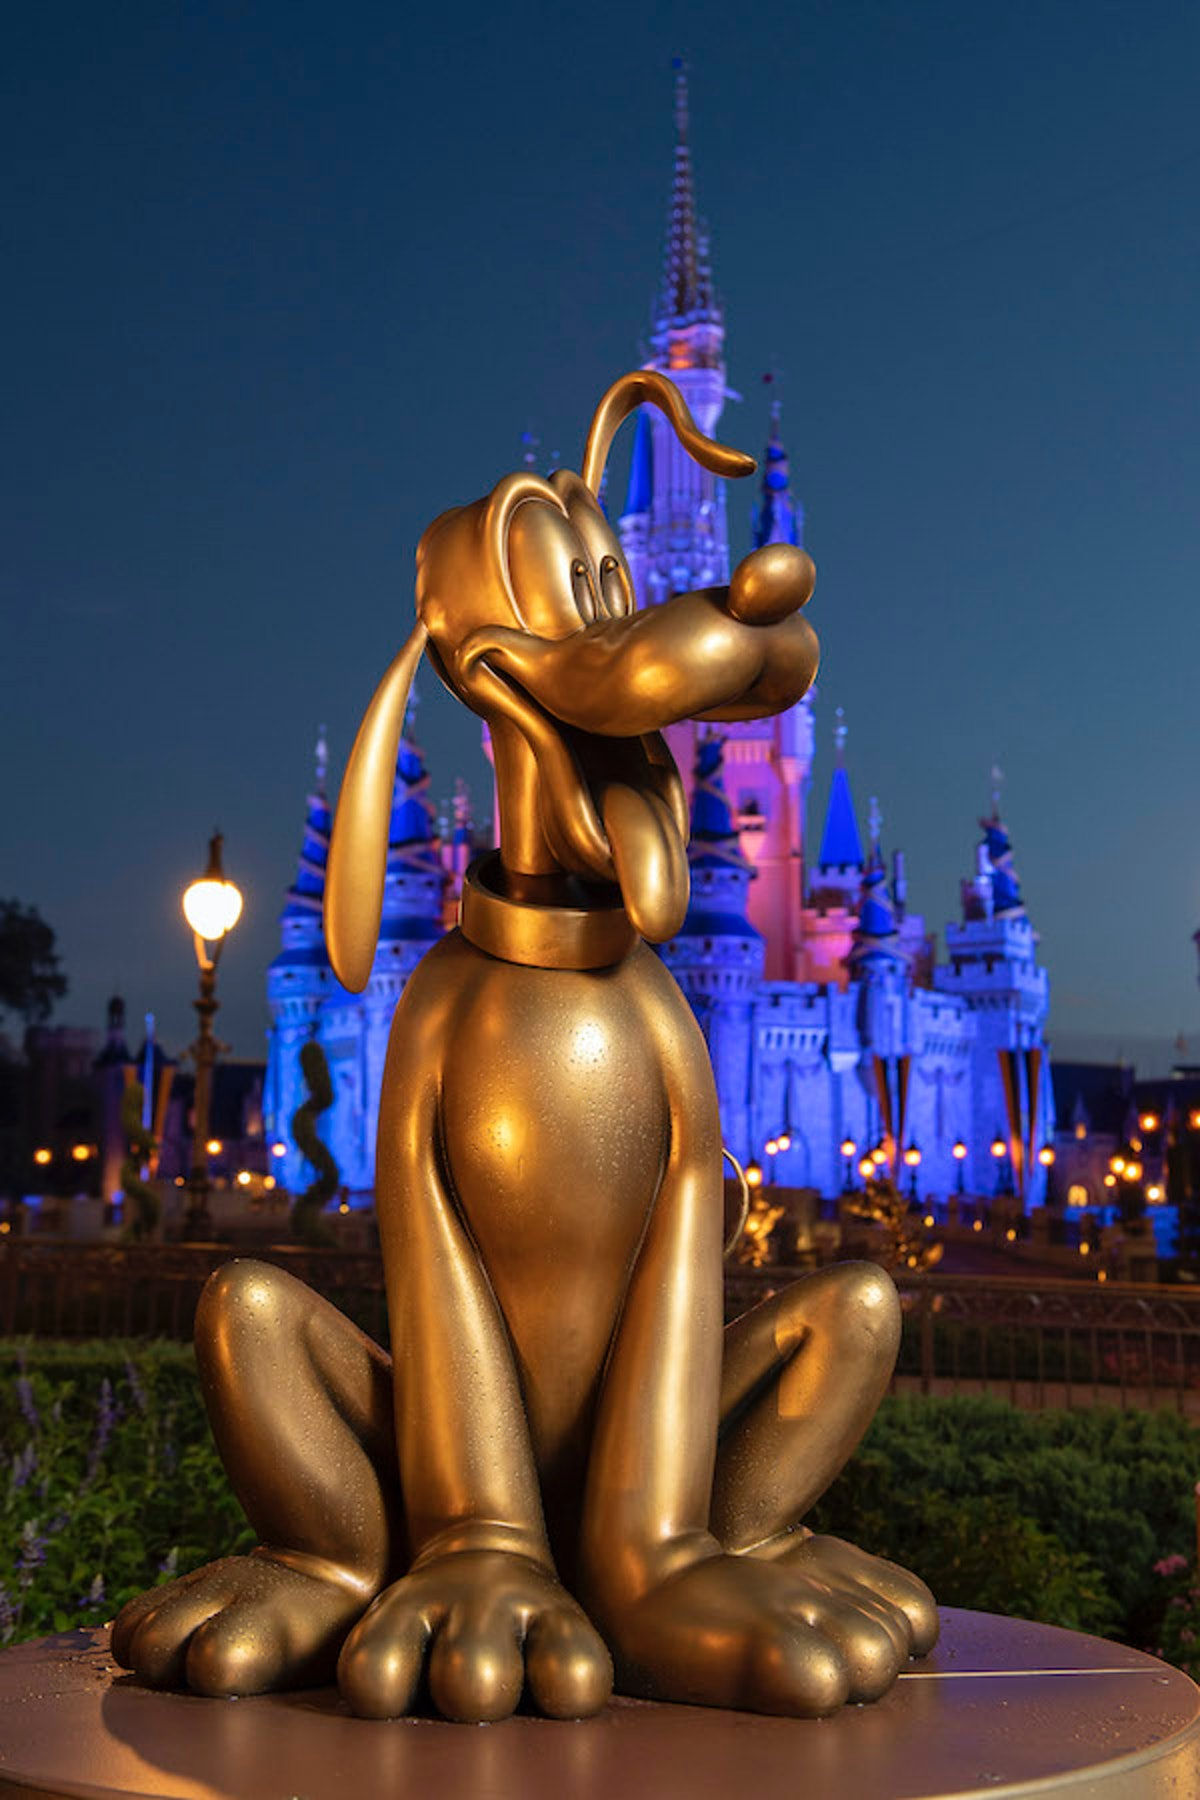 Disney World's gold statues for the 50th anniversary include Pluto.